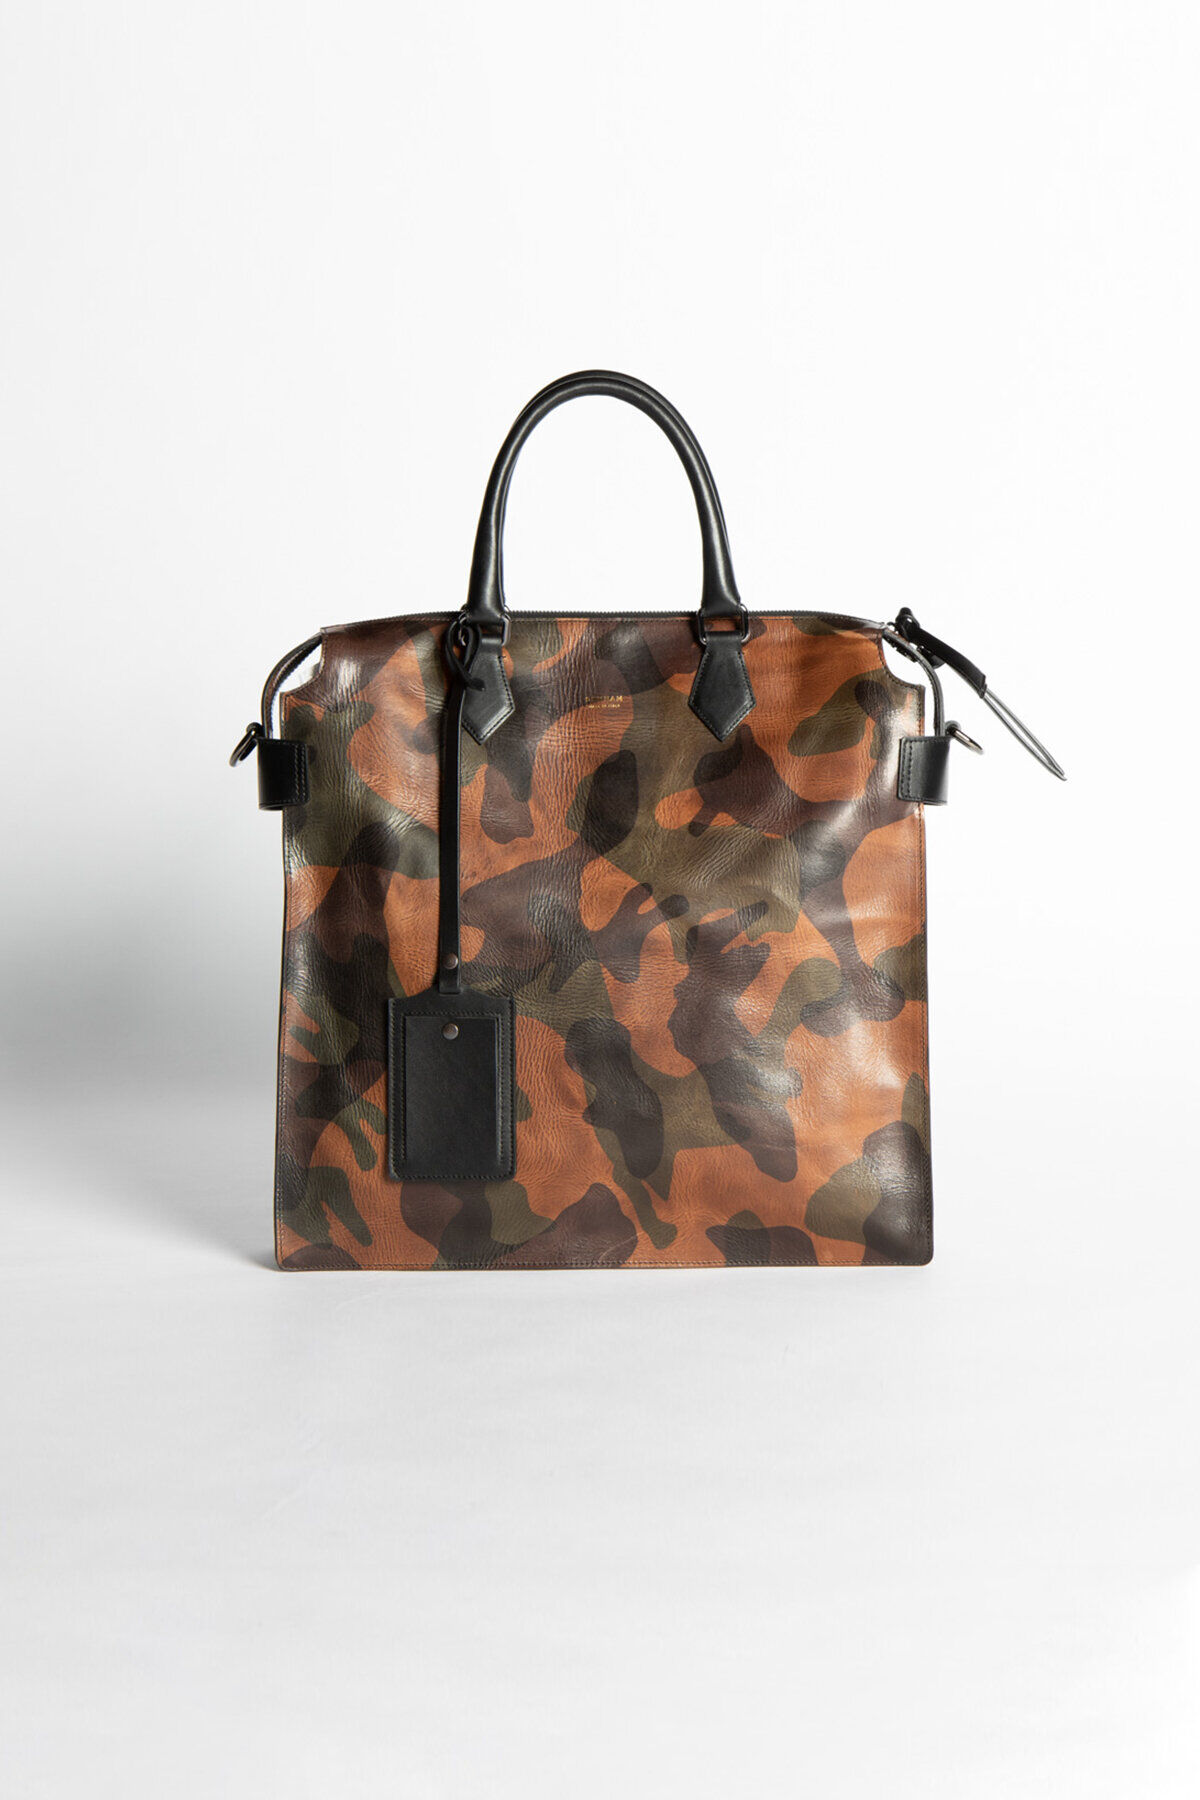 ZIP TOTE BAG Camo Laser Print Leather